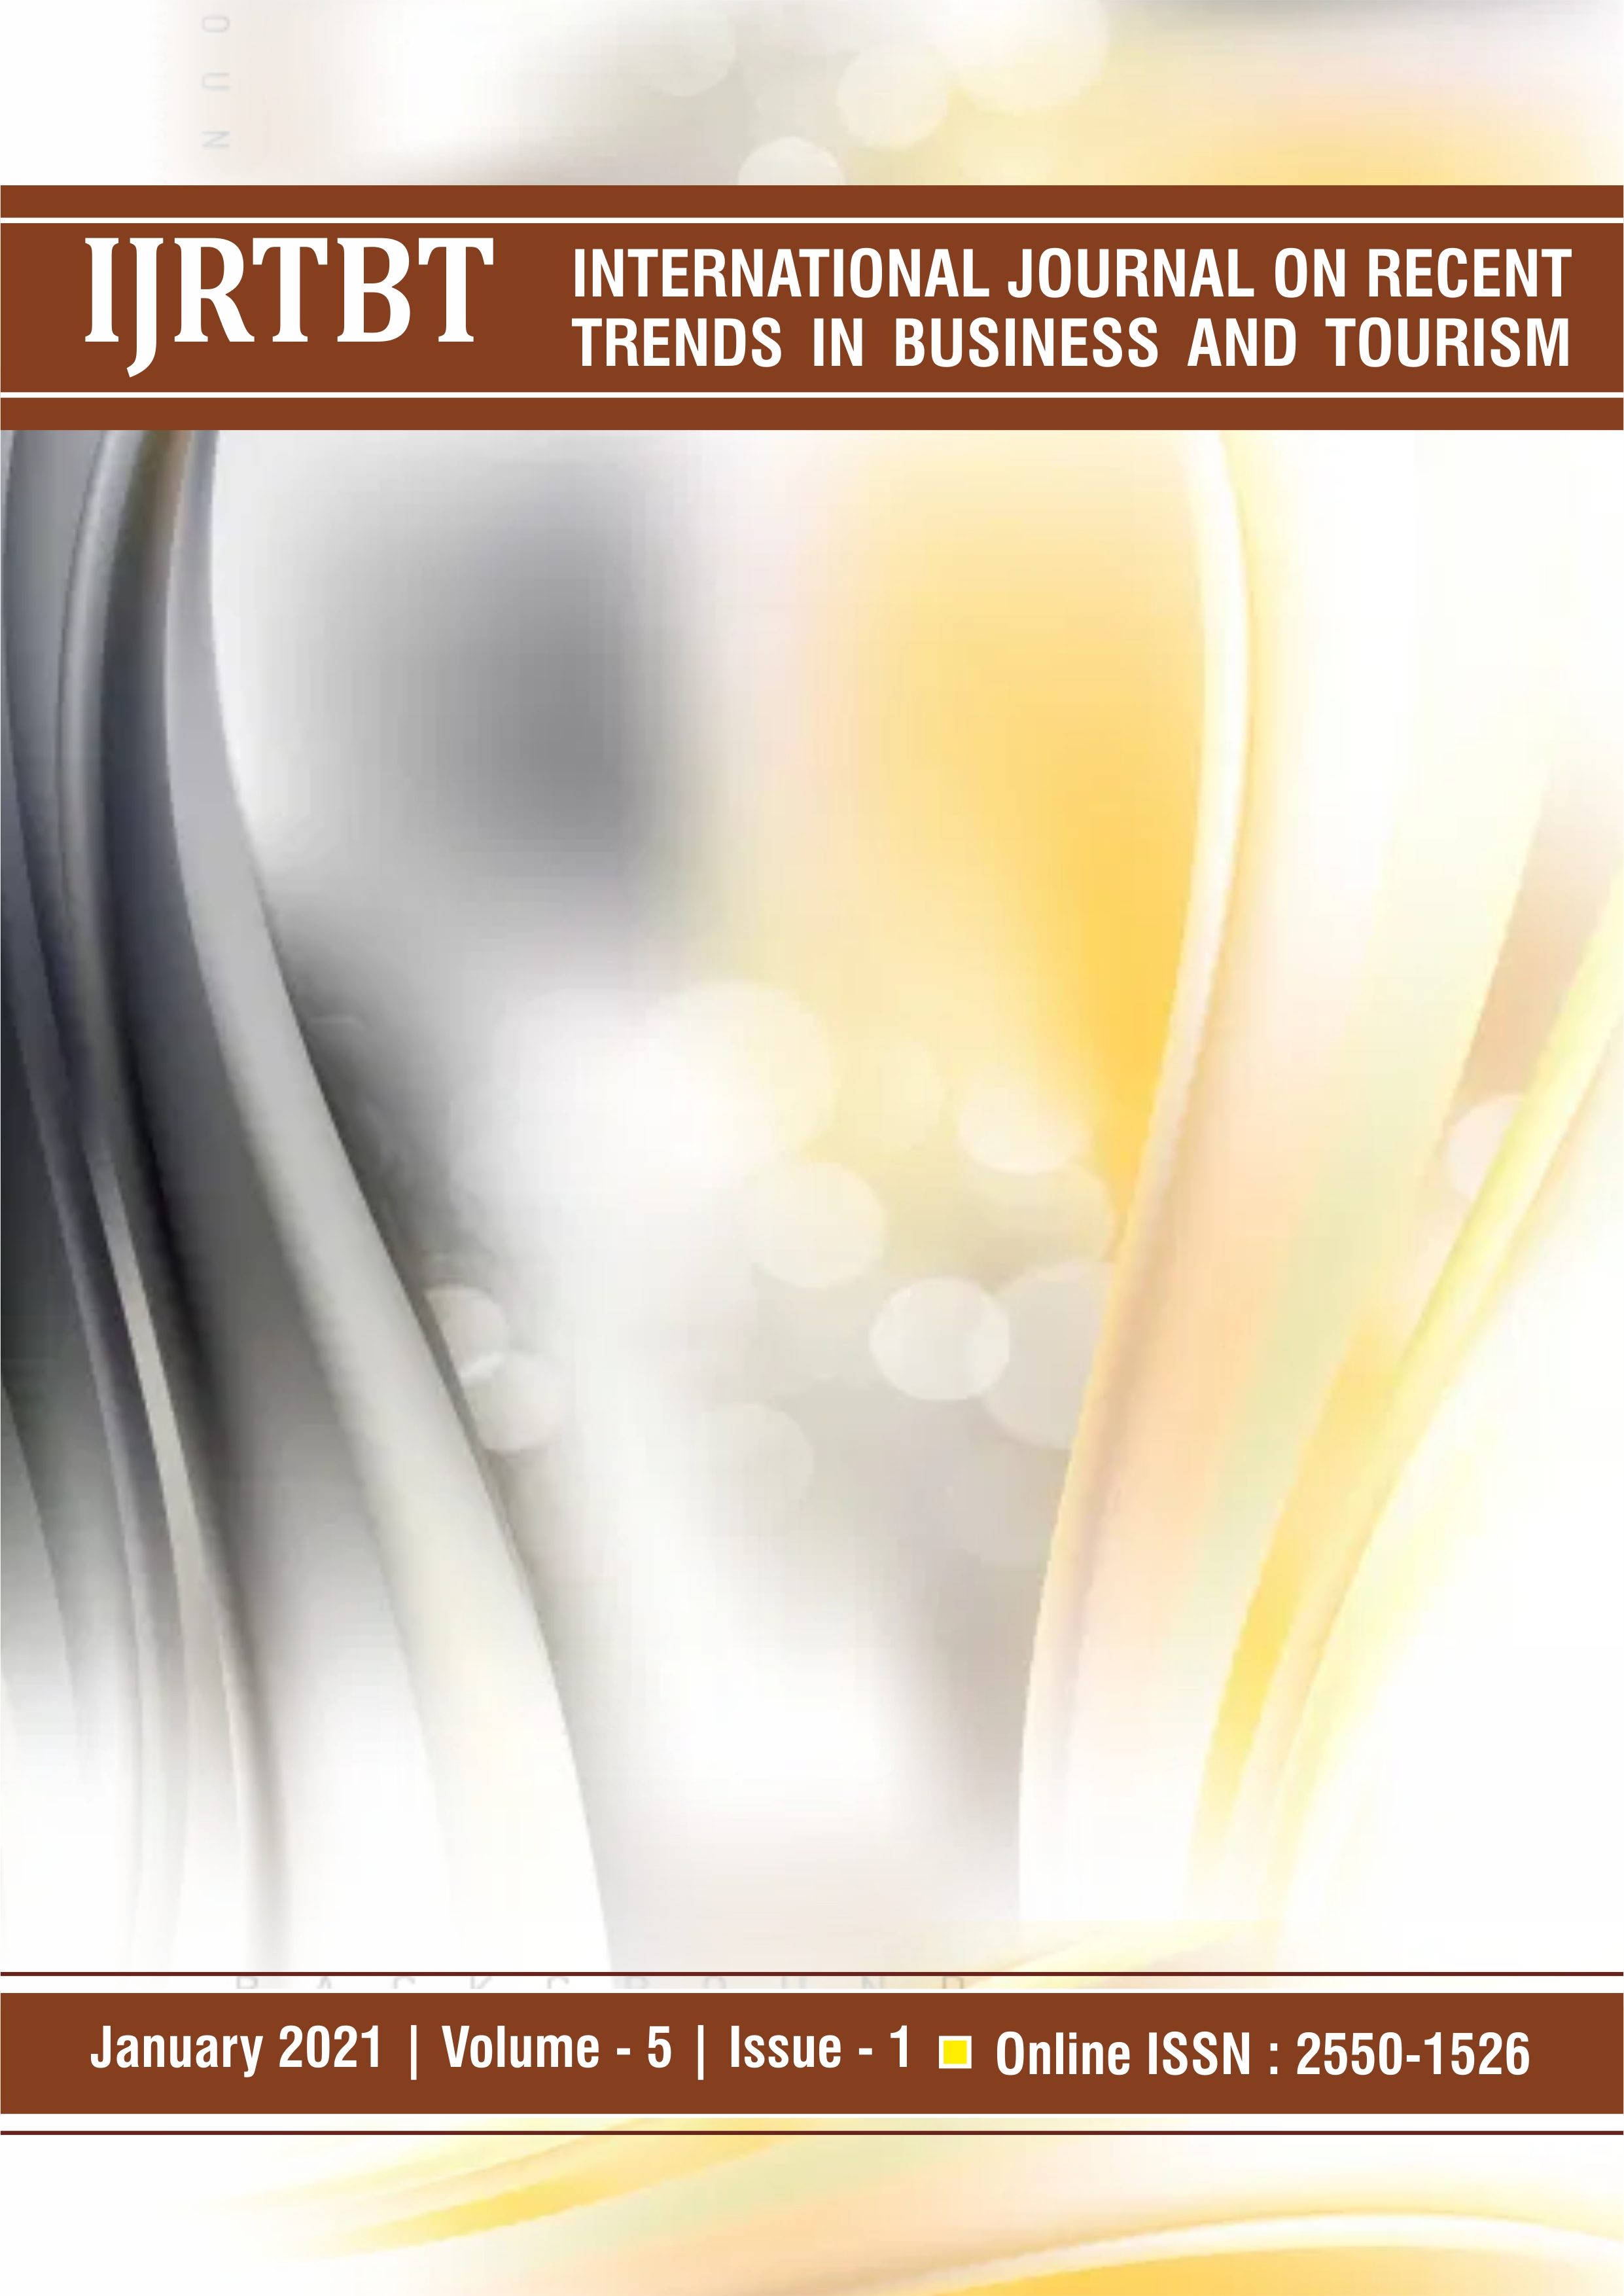 View Vol. 5 No. 1 (2021): International Journal on Recent Trends in Business and Tourism